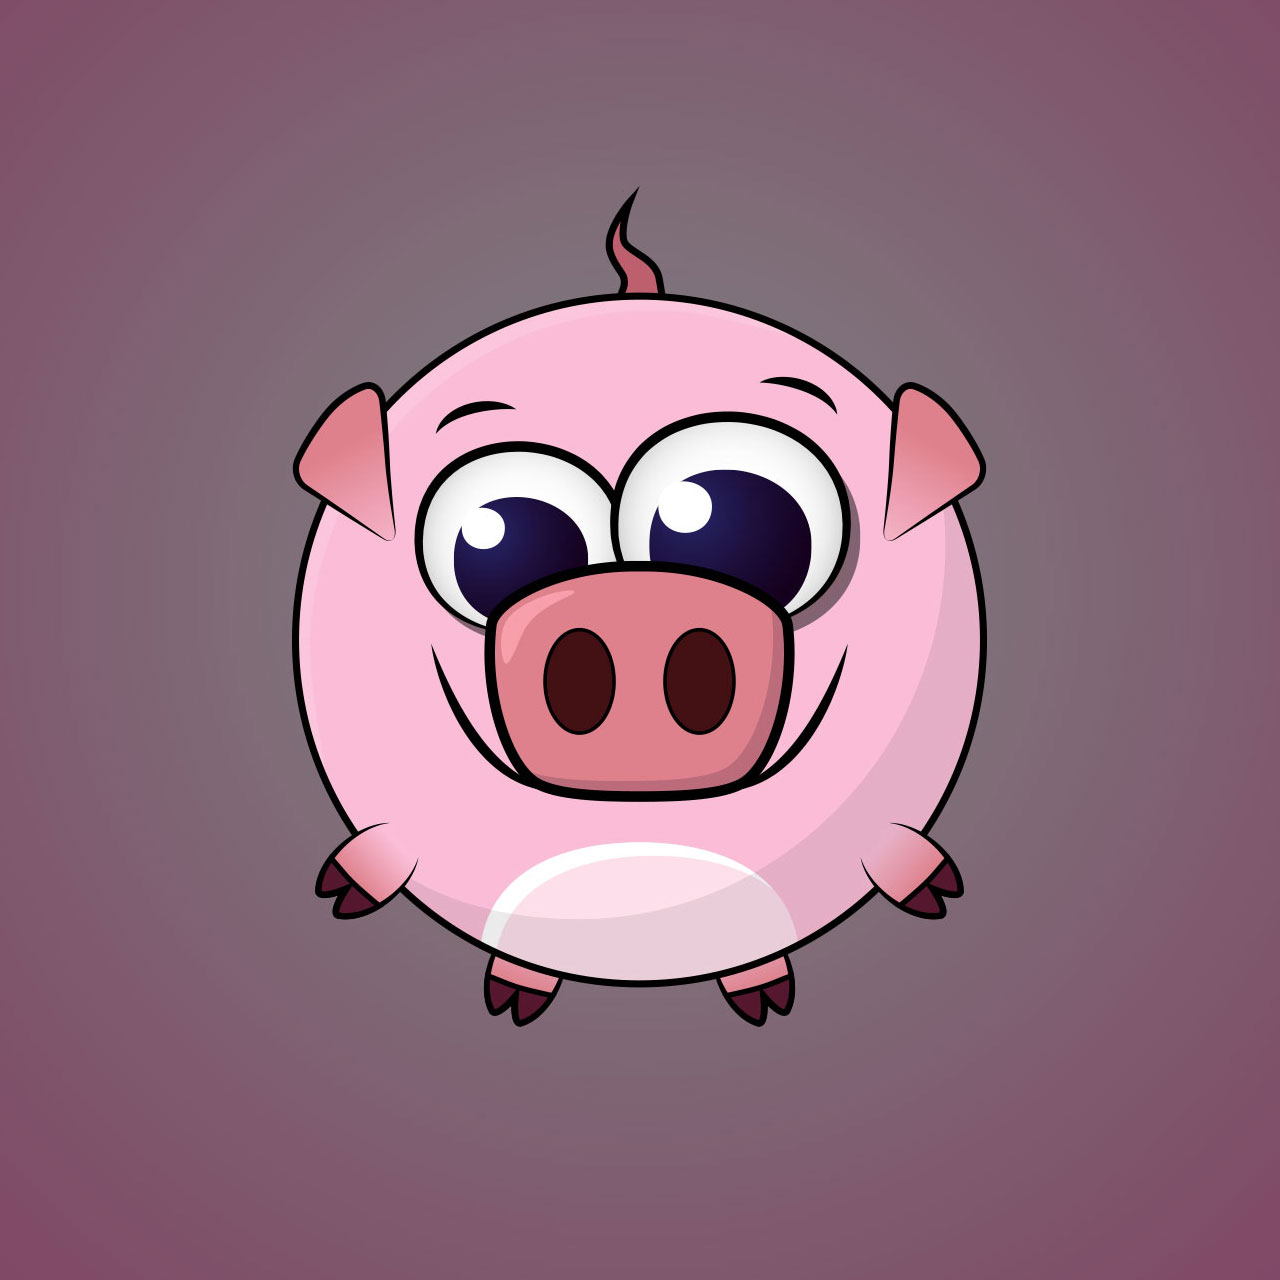 Pig Minimal Vector Character Design For A Casual Mobile Game